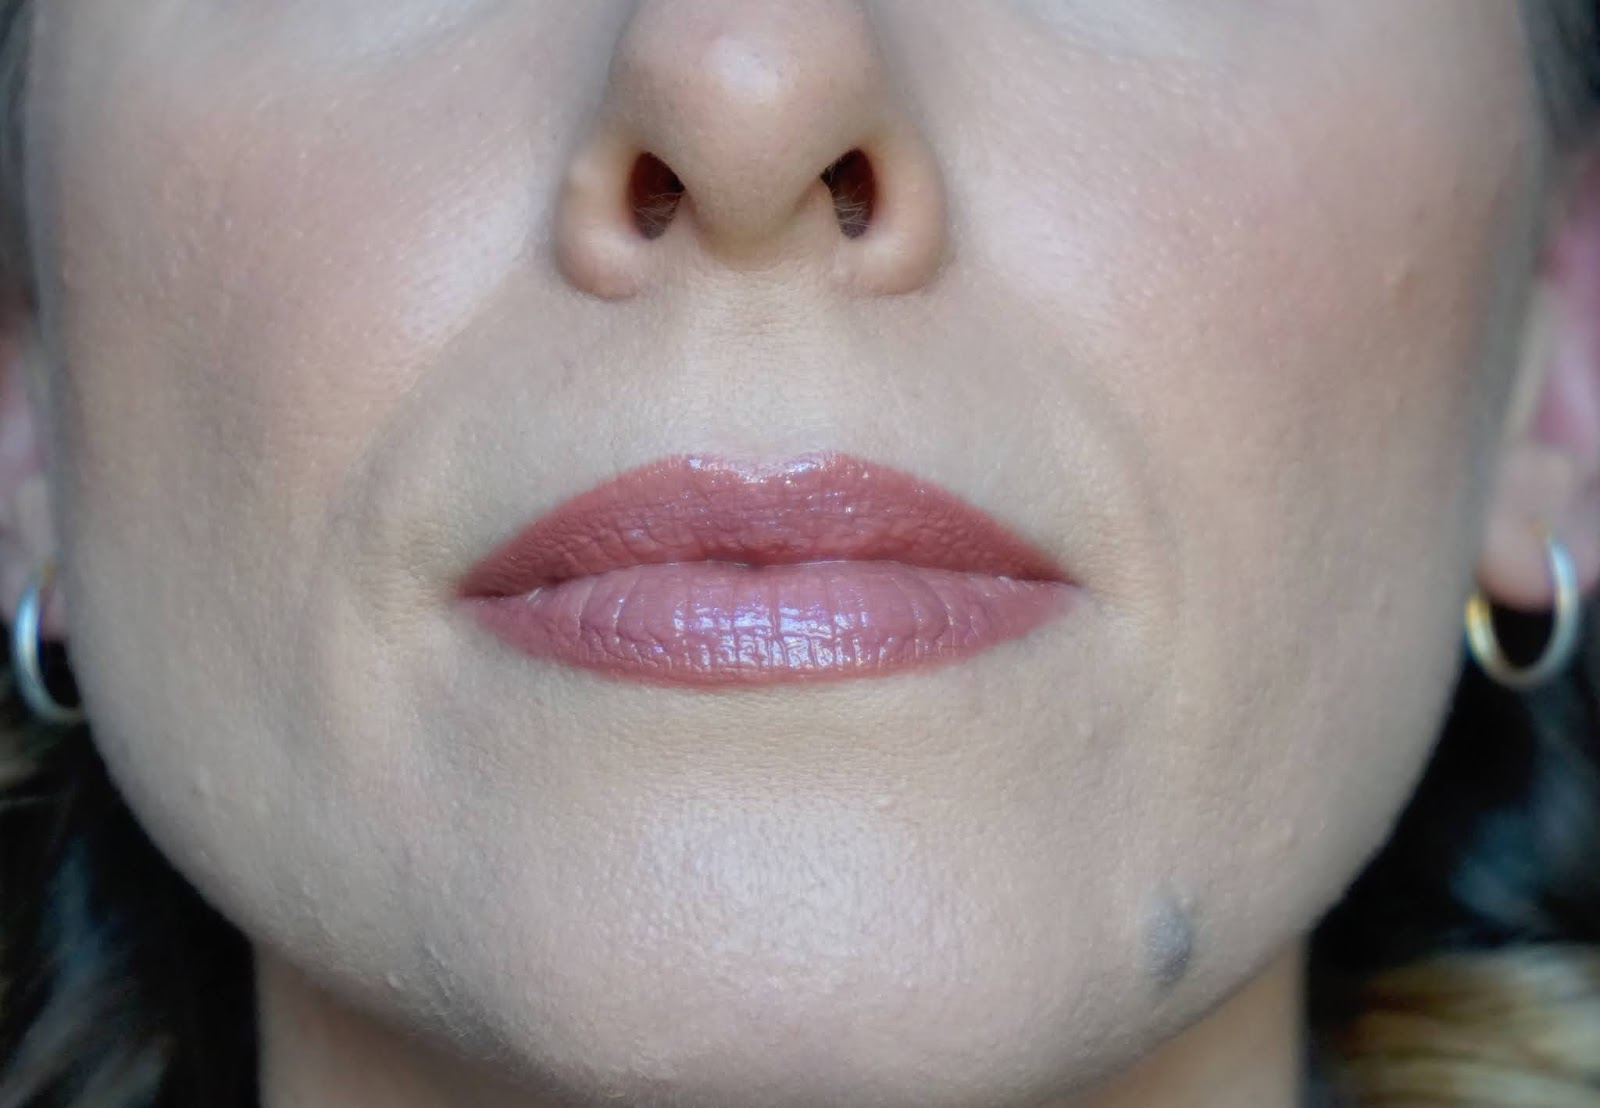 Half of face with lipstick and lip gloss applied to lips